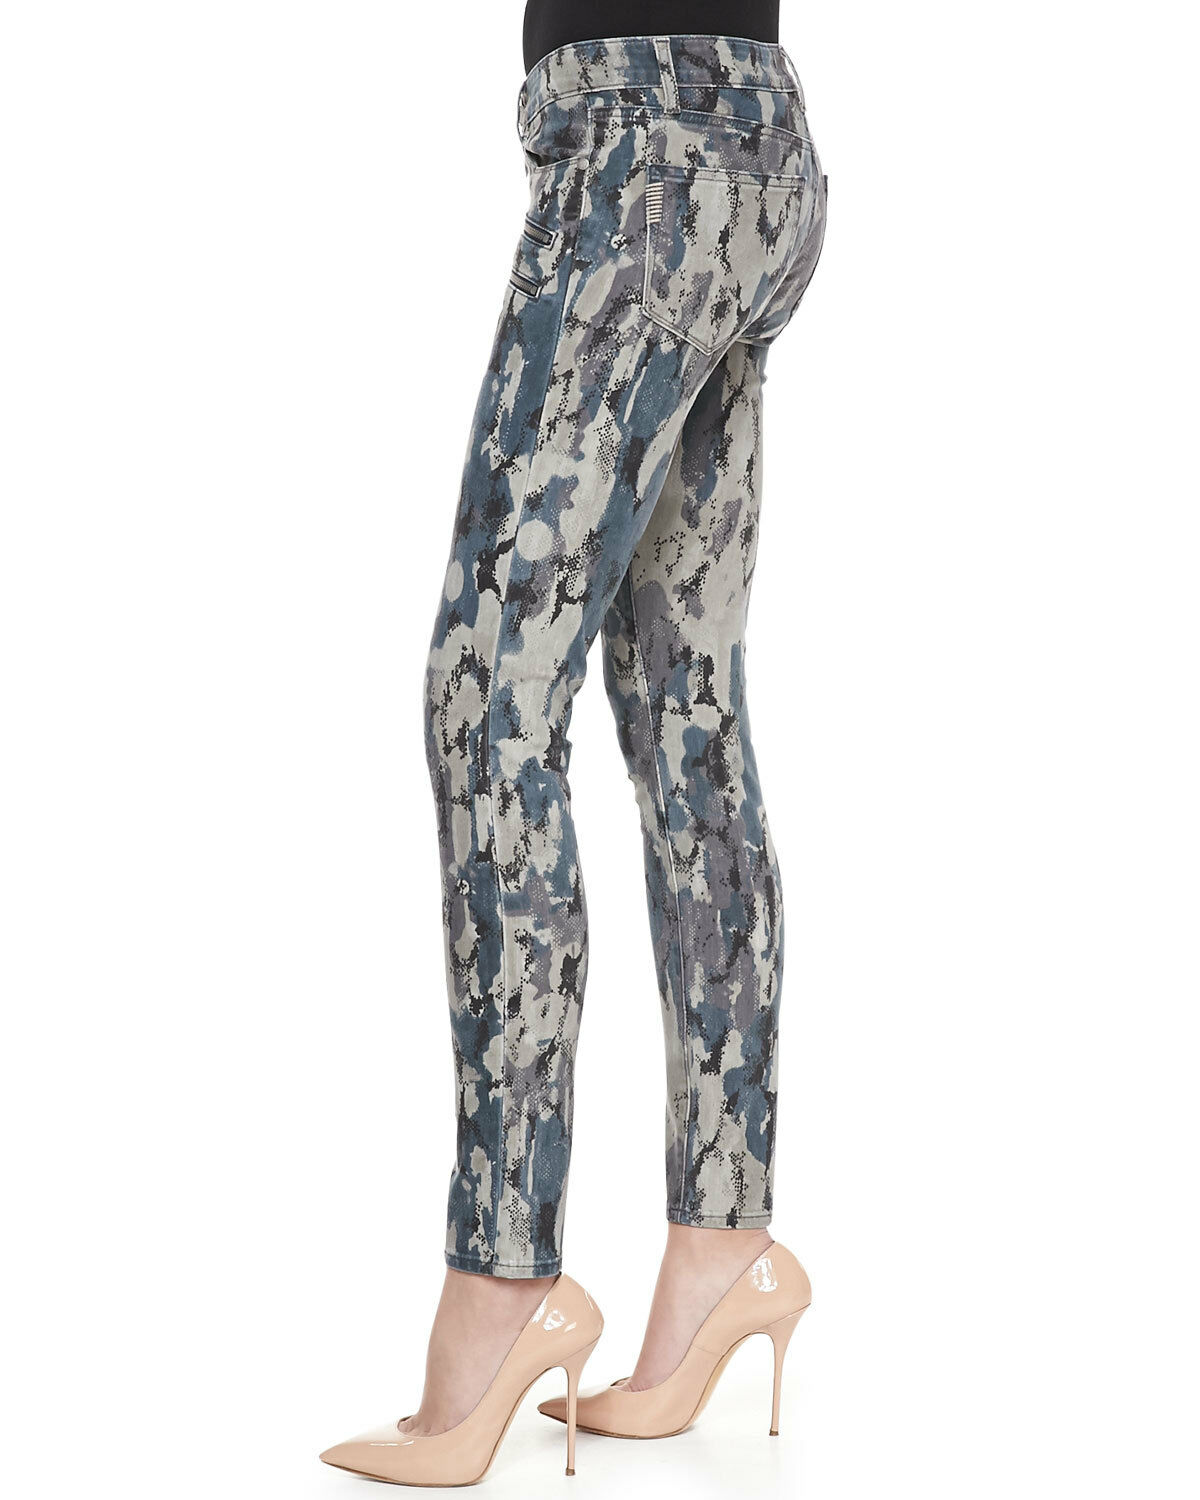 249 NWT PAIGE DENIM 25 Madagascar Ultra Skinny Double Zipper Reptile Camo Jeans